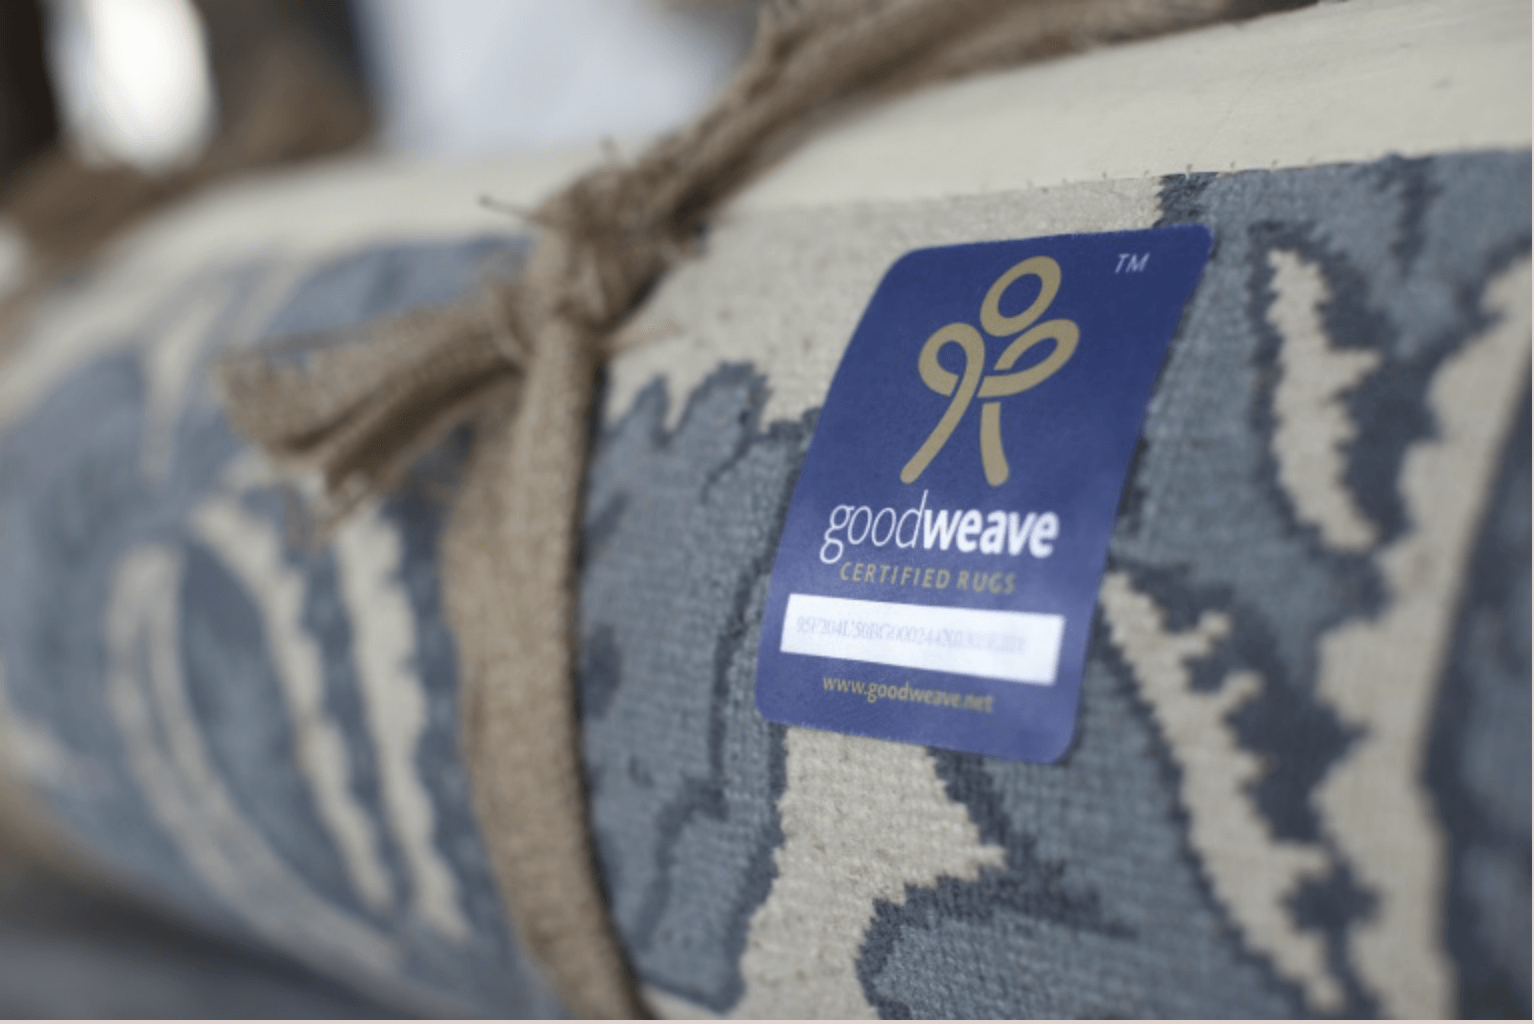 Always look out for the GoodWeave label when buying a rug.